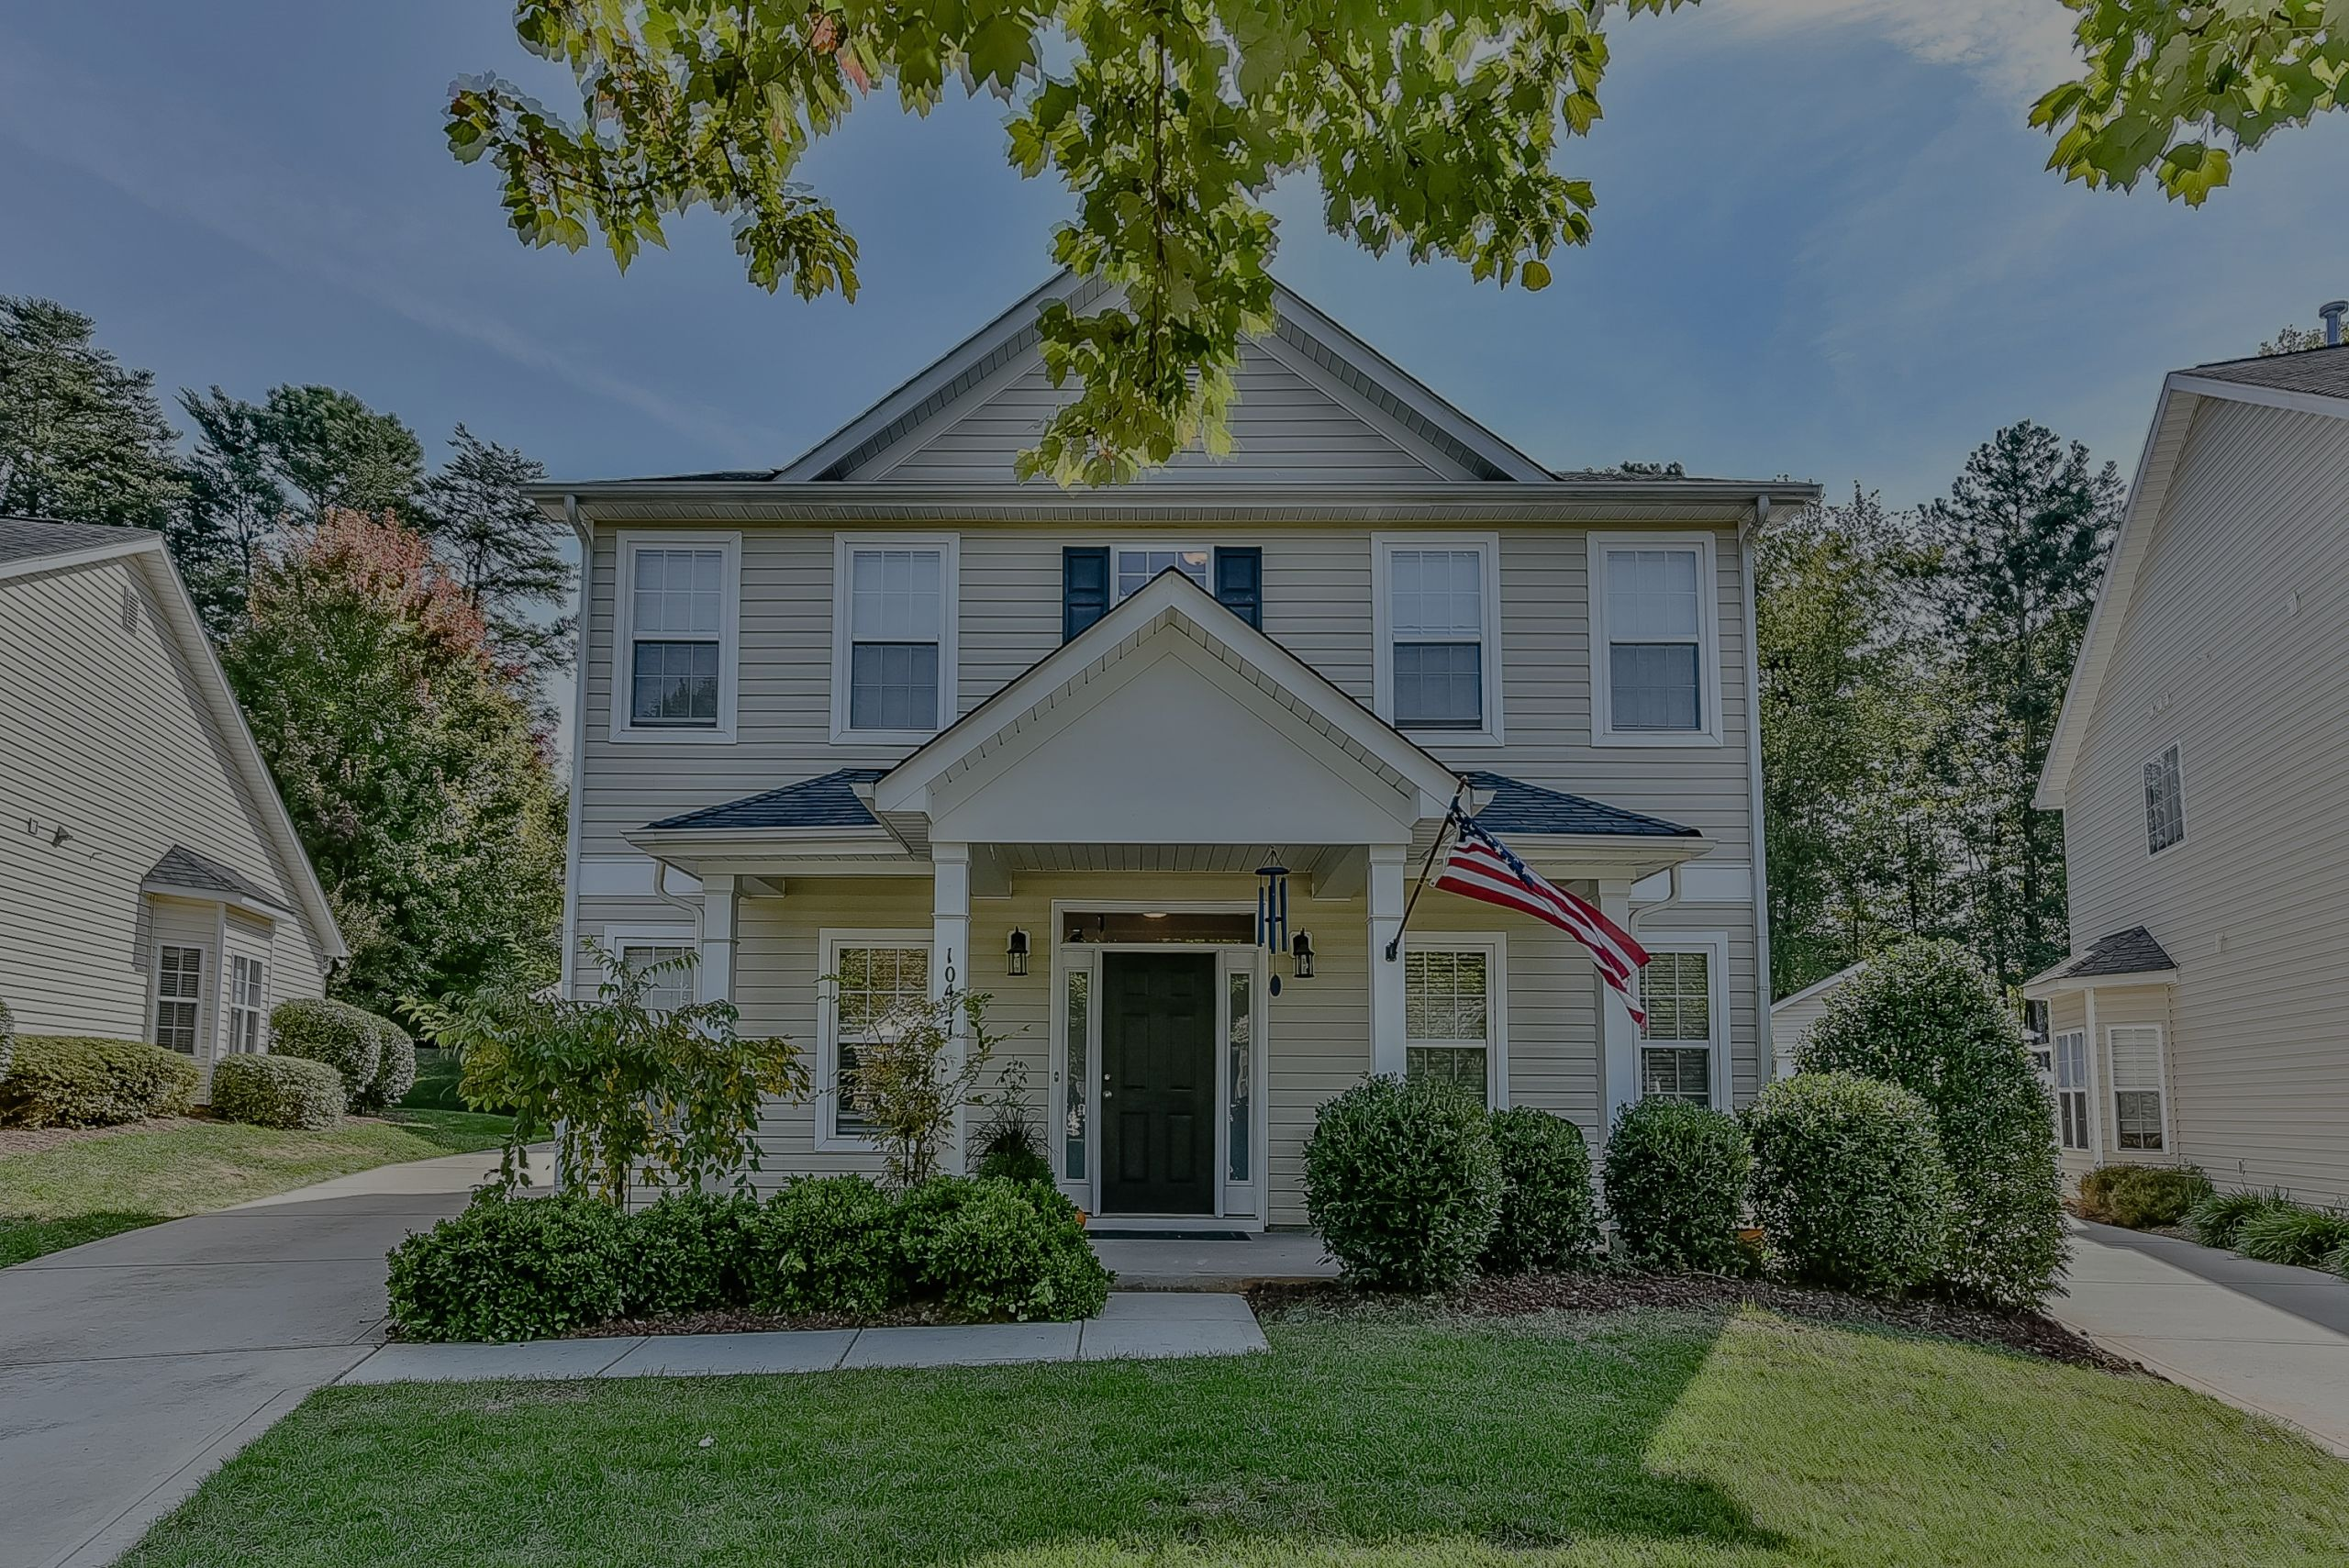 10417 Watoga Way Cornelius, NC – Just Listed